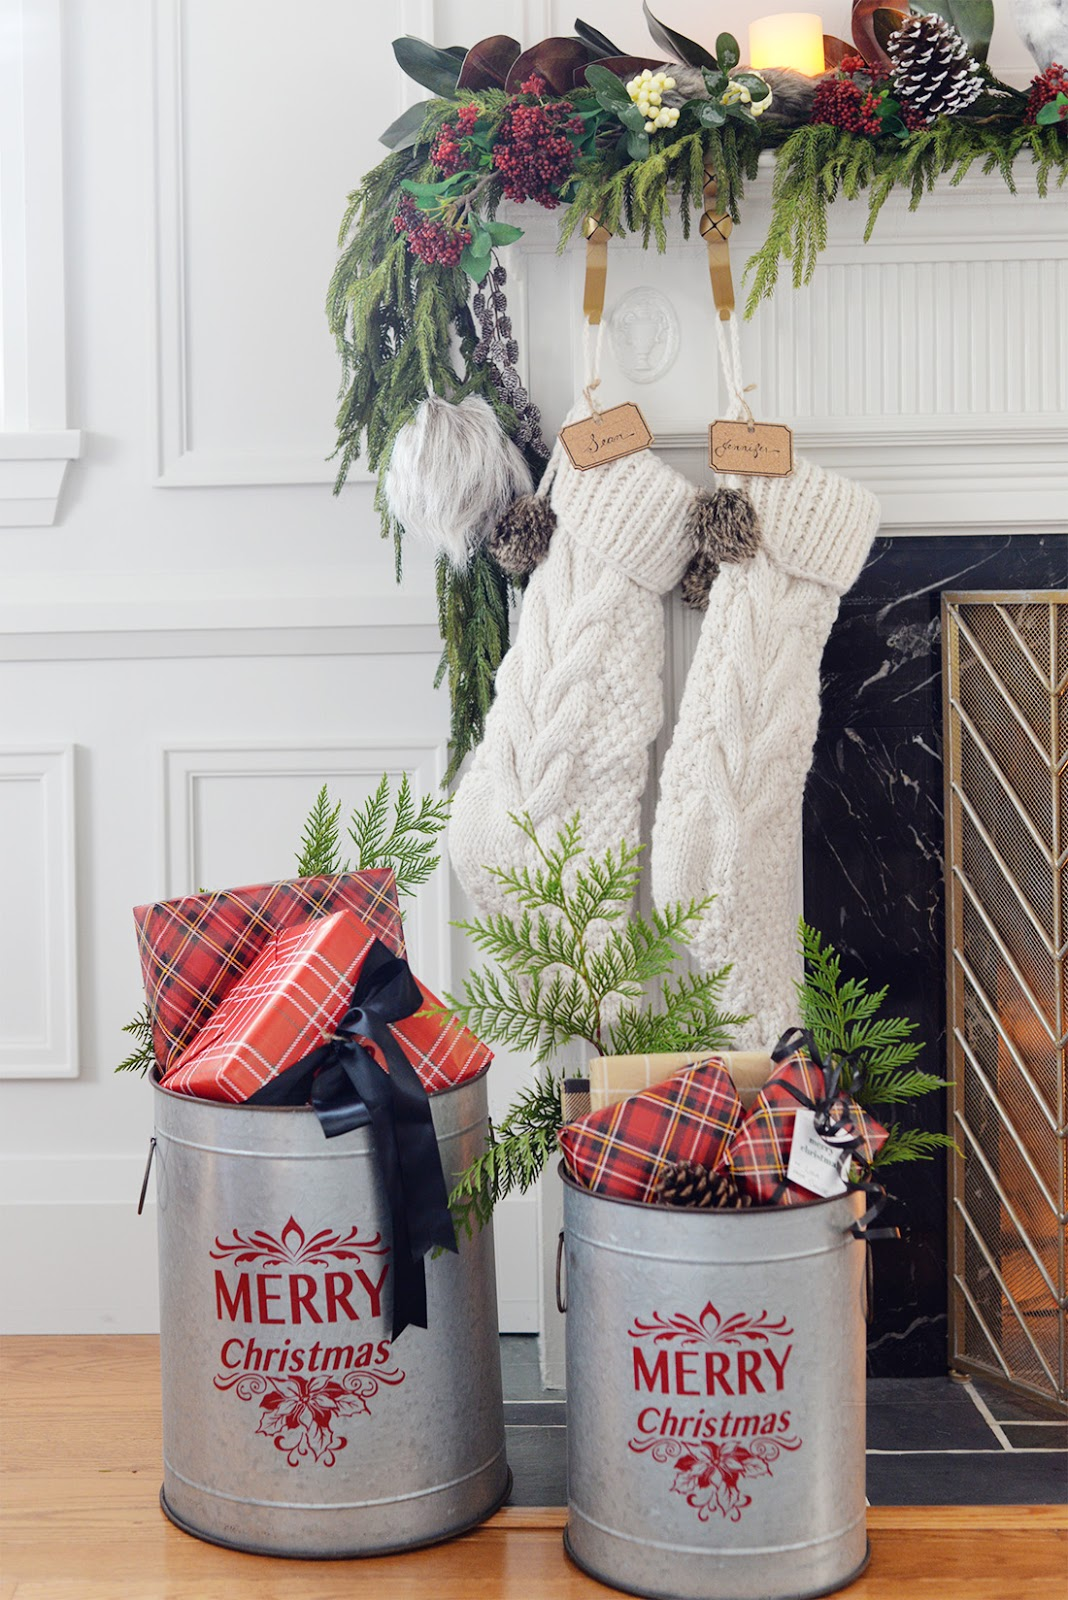 a faux christmas fireplace mantel garland with red seeded eucalyptus, a cedar garland and magnolia leaves. A galvanized bucket holding christmas gifts. Cable knit Christmas stocking